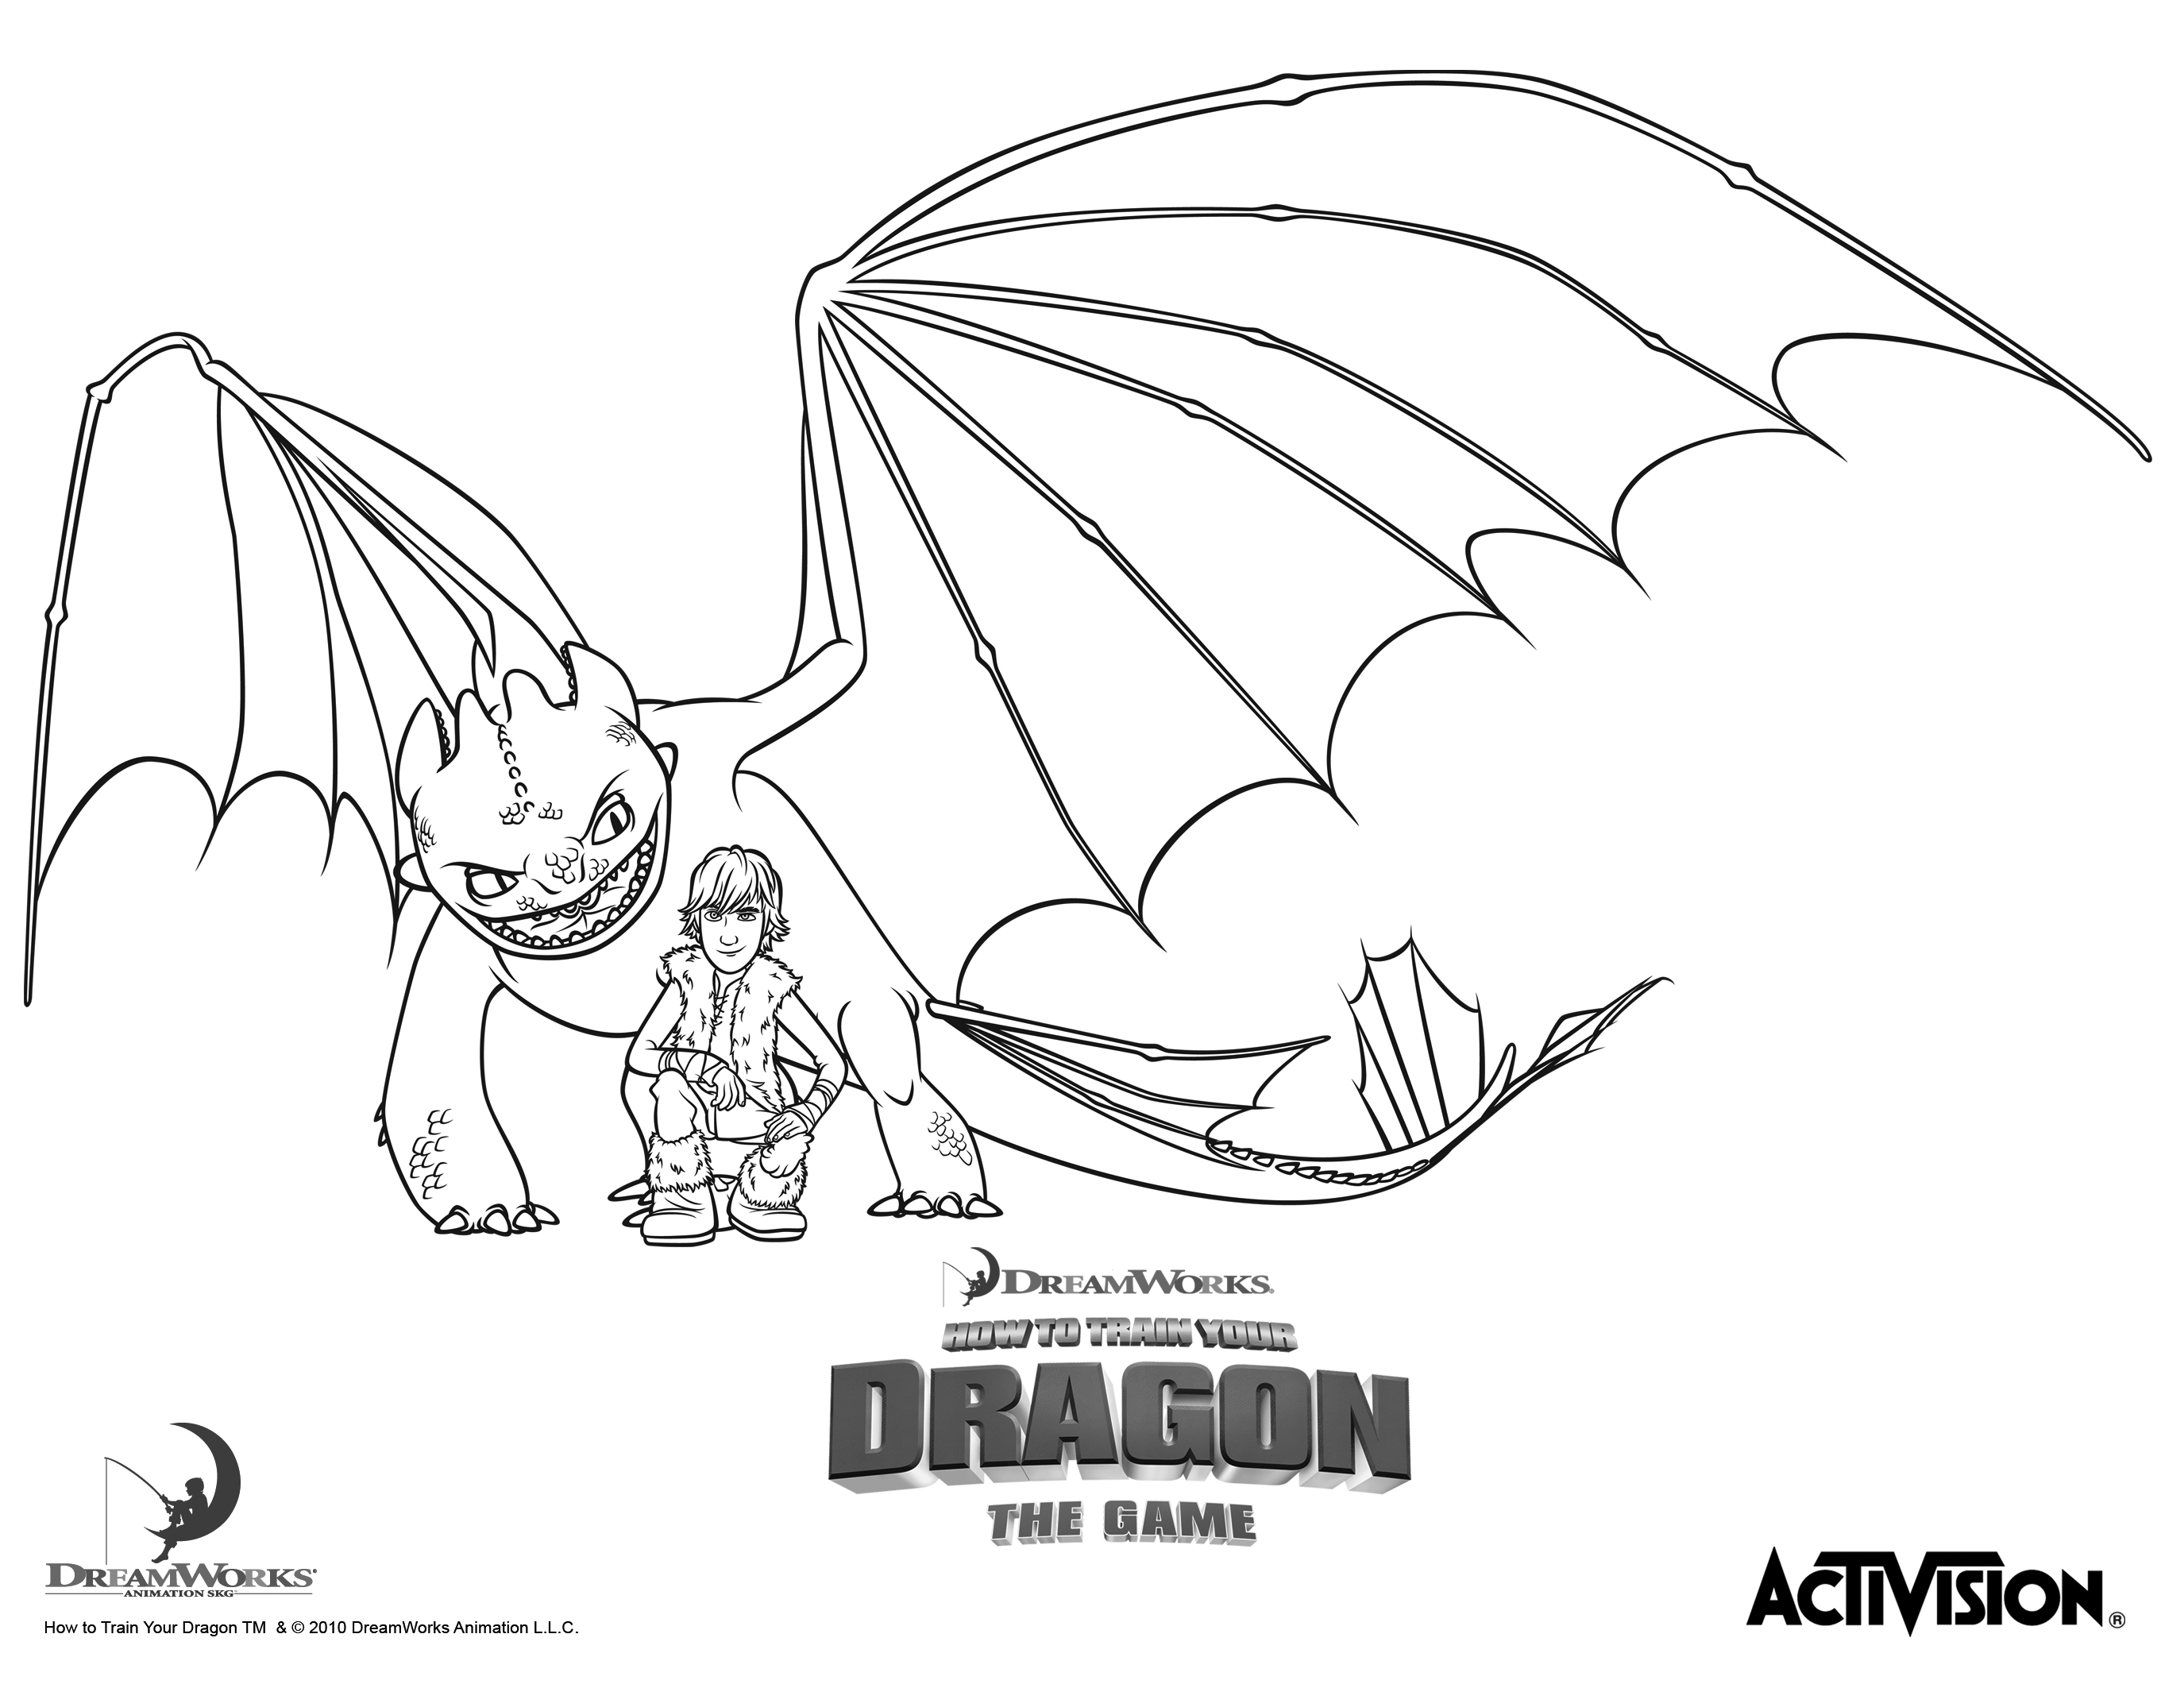 How to train your dragon clipart black and white.